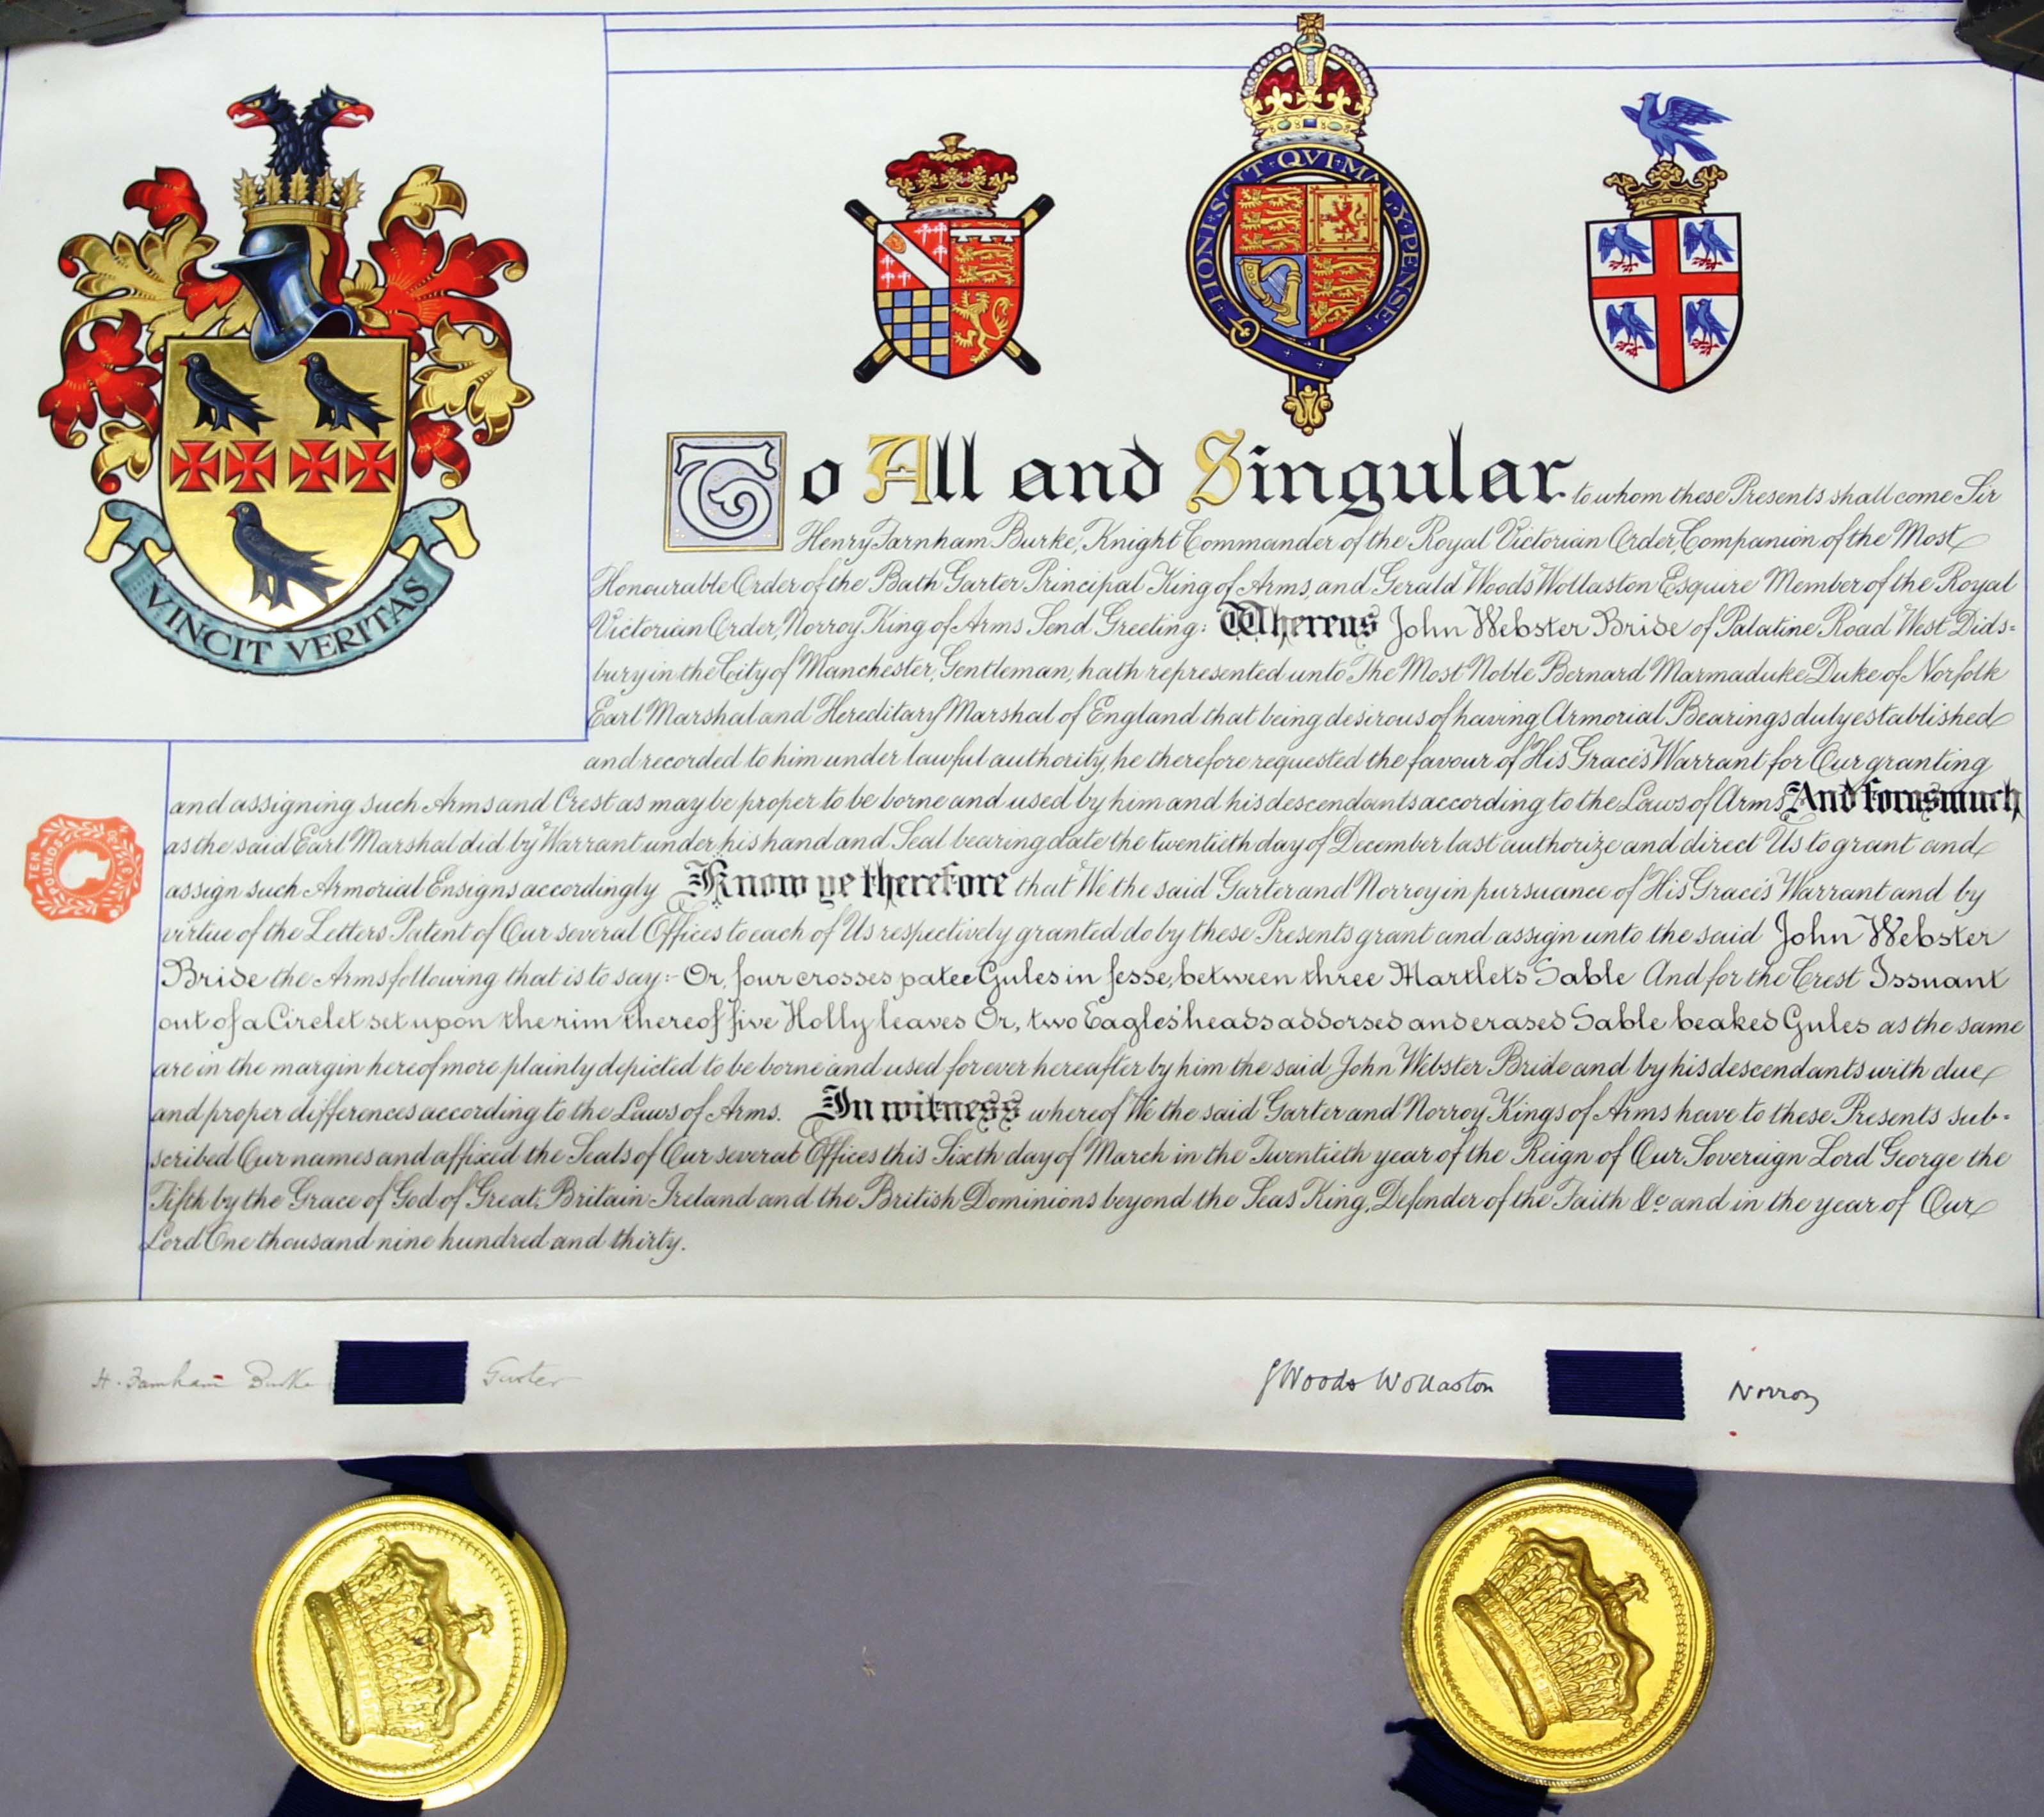 Lot 1967 - CASED GRANT OF ARMS, to John Webster Bride dated 6th March 1930, on vellum, with a large gilt